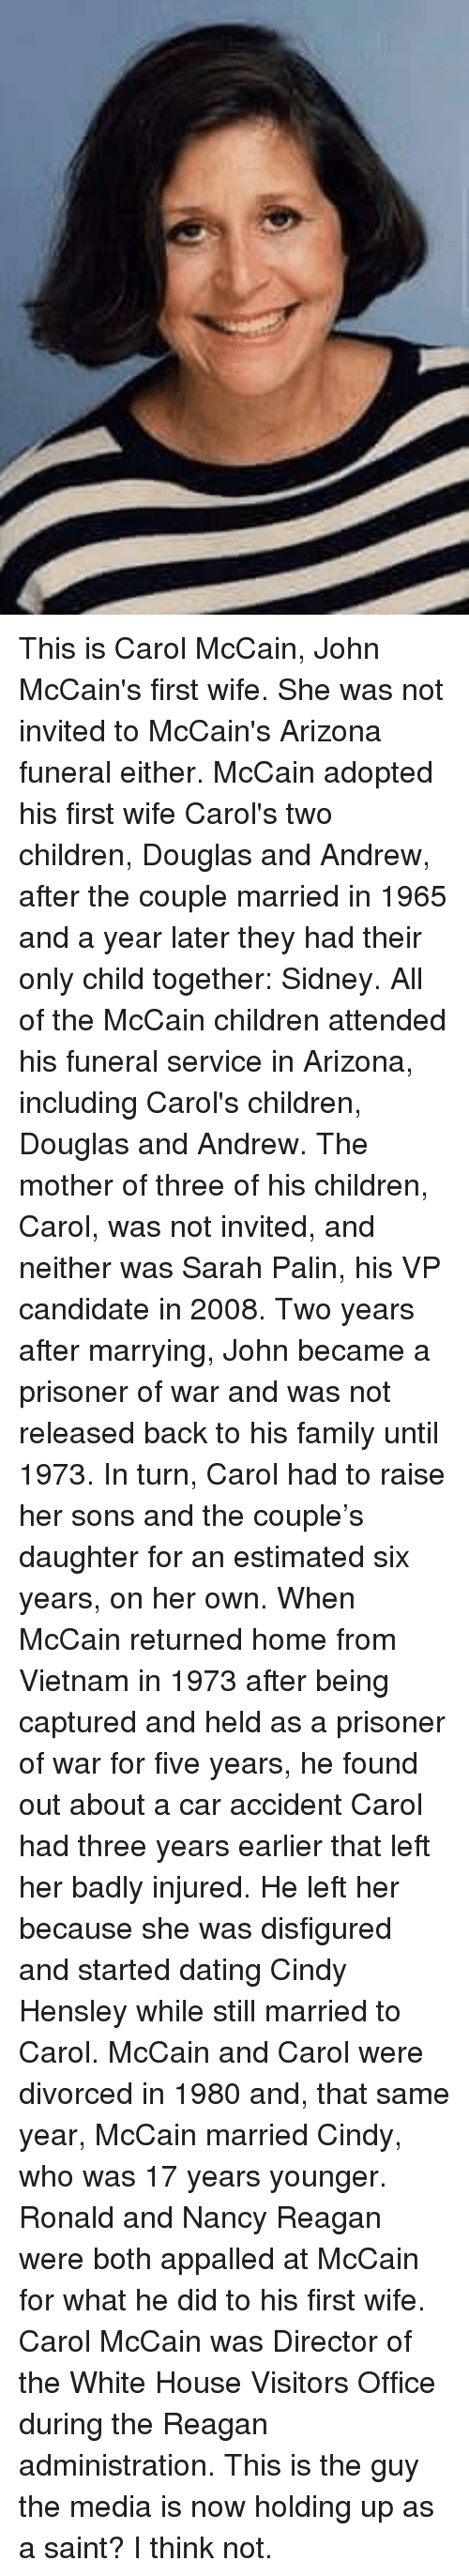 Carols: This is Carol McCain, John McCain's first wife. She was not invited to McCain's Arizona funeral either. McCain adopted his first wife Carol's two children, Douglas and Andrew, after the couple married in 1965 and a year later they had their only child together: Sidney. All of the McCain children attended his funeral service in Arizona, including Carol's children, Douglas and Andrew. The mother of three of his children, Carol, was not invited, and neither was Sarah Palin, his VP candidate in 2008.  Two years after marrying, John became a prisoner of war and was not released back to his family until 1973. In turn, Carol had to raise her sons and the couple's daughter for an estimated six years, on her own. When McCain returned home from Vietnam in 1973 after being captured and held as a prisoner of war for five years, he found out about a car accident Carol had three years earlier that left her badly injured.  He left her because she was disfigured and started dating Cindy Hensley while still married to Carol. McCain and Carol were divorced in 1980 and, that same year, McCain married Cindy, who was 17 years younger. Ronald and Nancy Reagan were both appalled at McCain for what he did to his first wife. Carol McCain was Director of the White House Visitors Office during the Reagan administration.  This is the guy the media is now holding up as a saint? I think not.